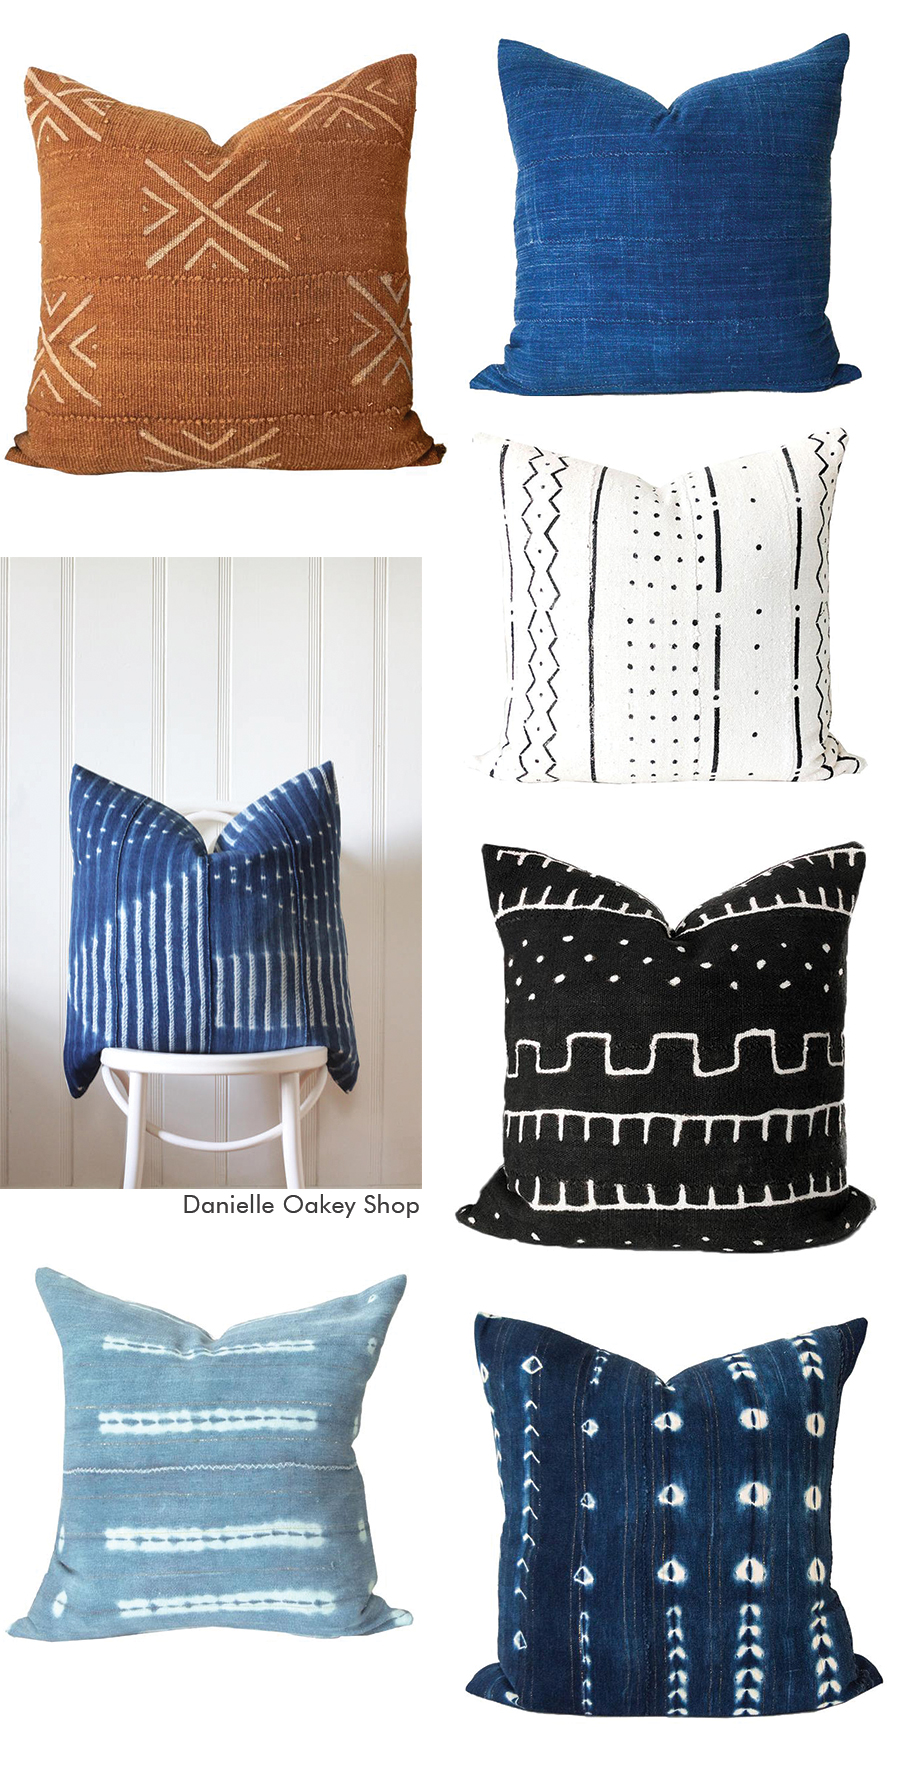 boho decor pillows - Where to shop for boho pillows